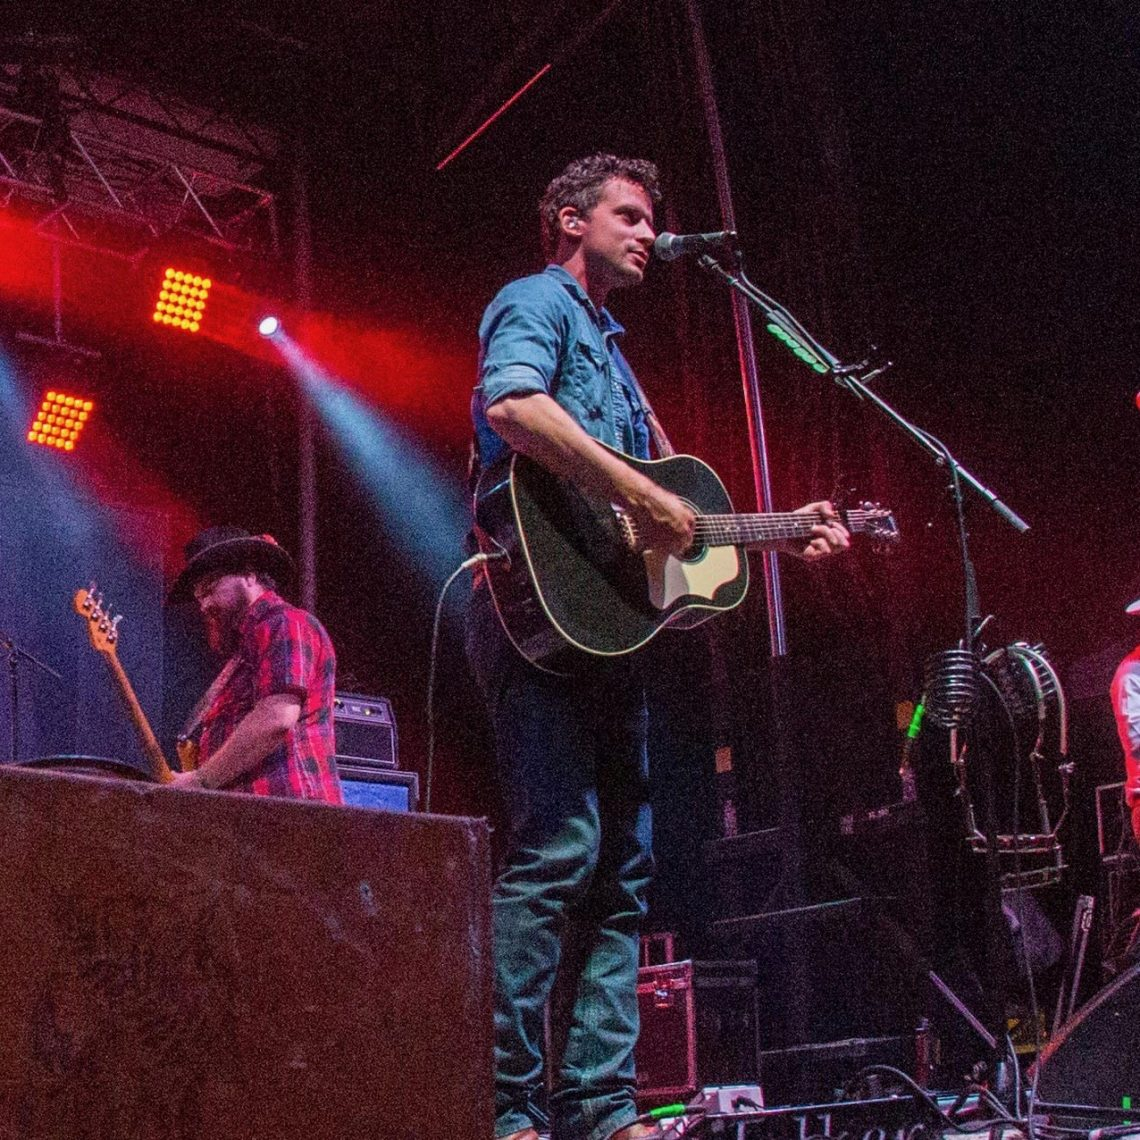 Oklahoma's Turnpike Troubadours, co-founders of Medicine Stone, headline the second night of this year's festival. (Photo courtesy Medicine Stone/RPR Media)